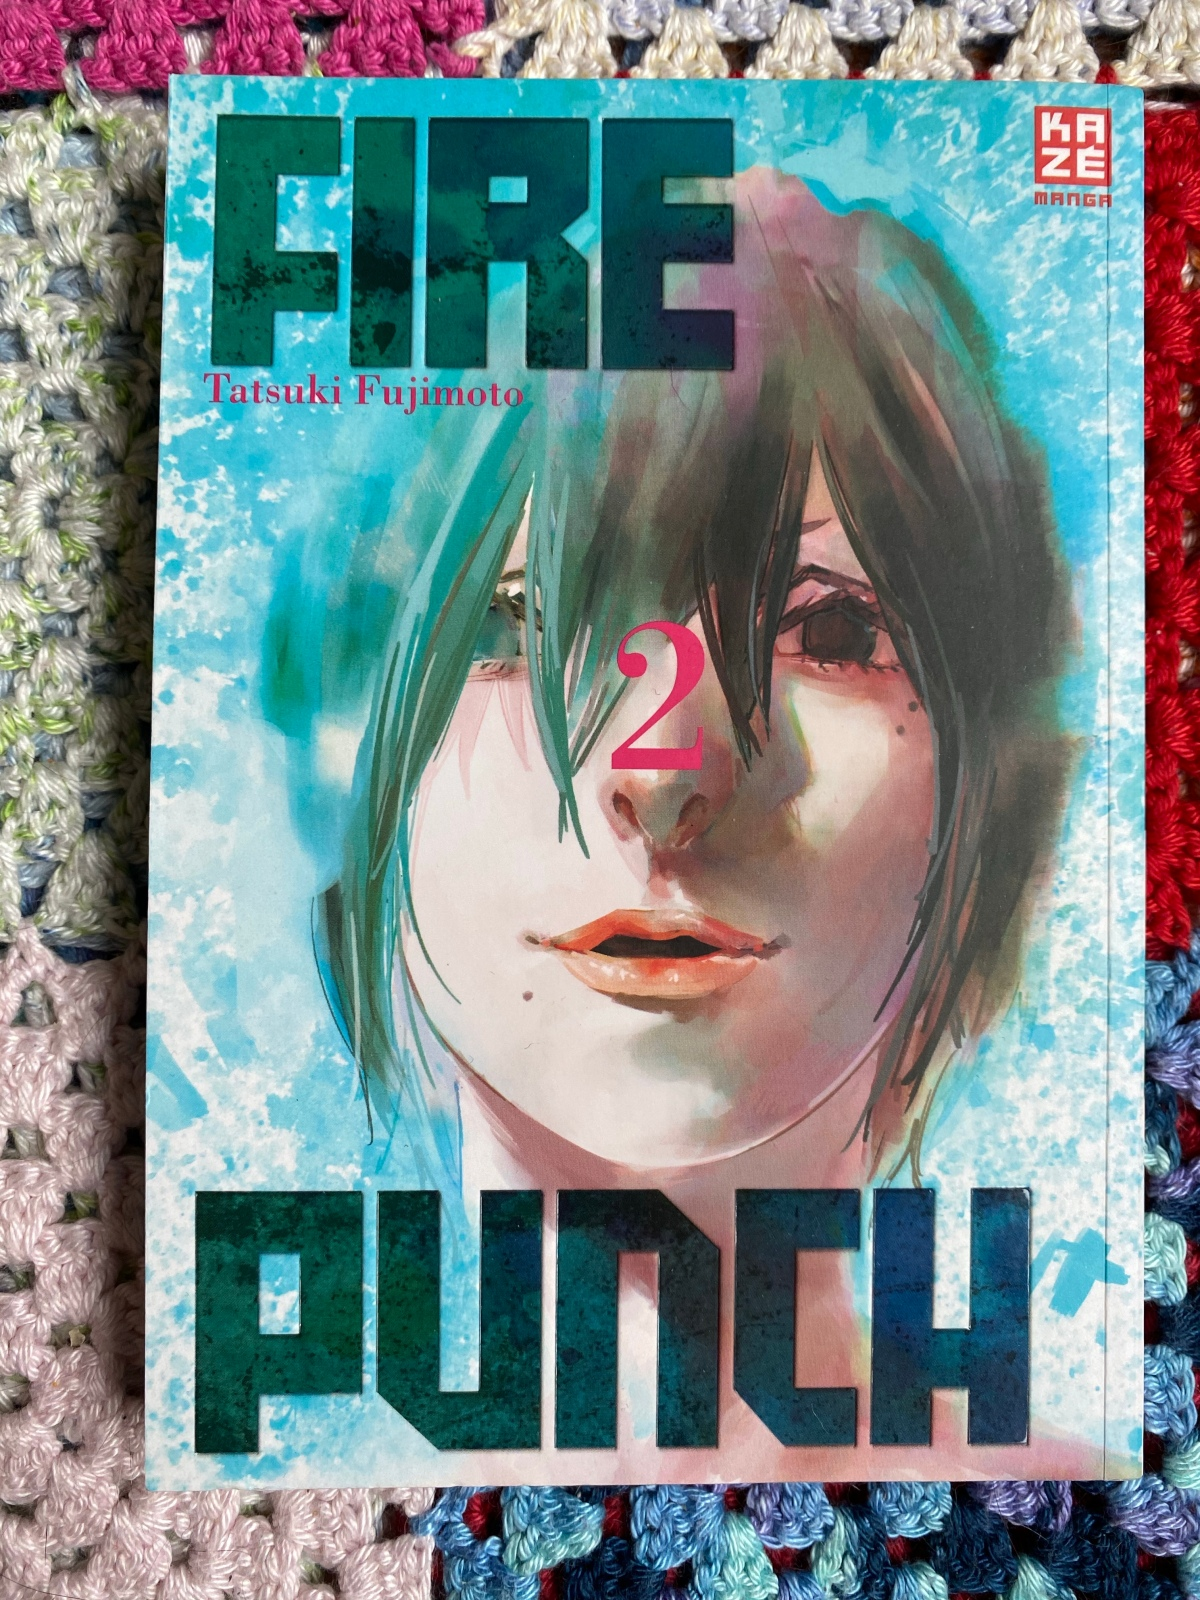 Fire Punch 02 |Review